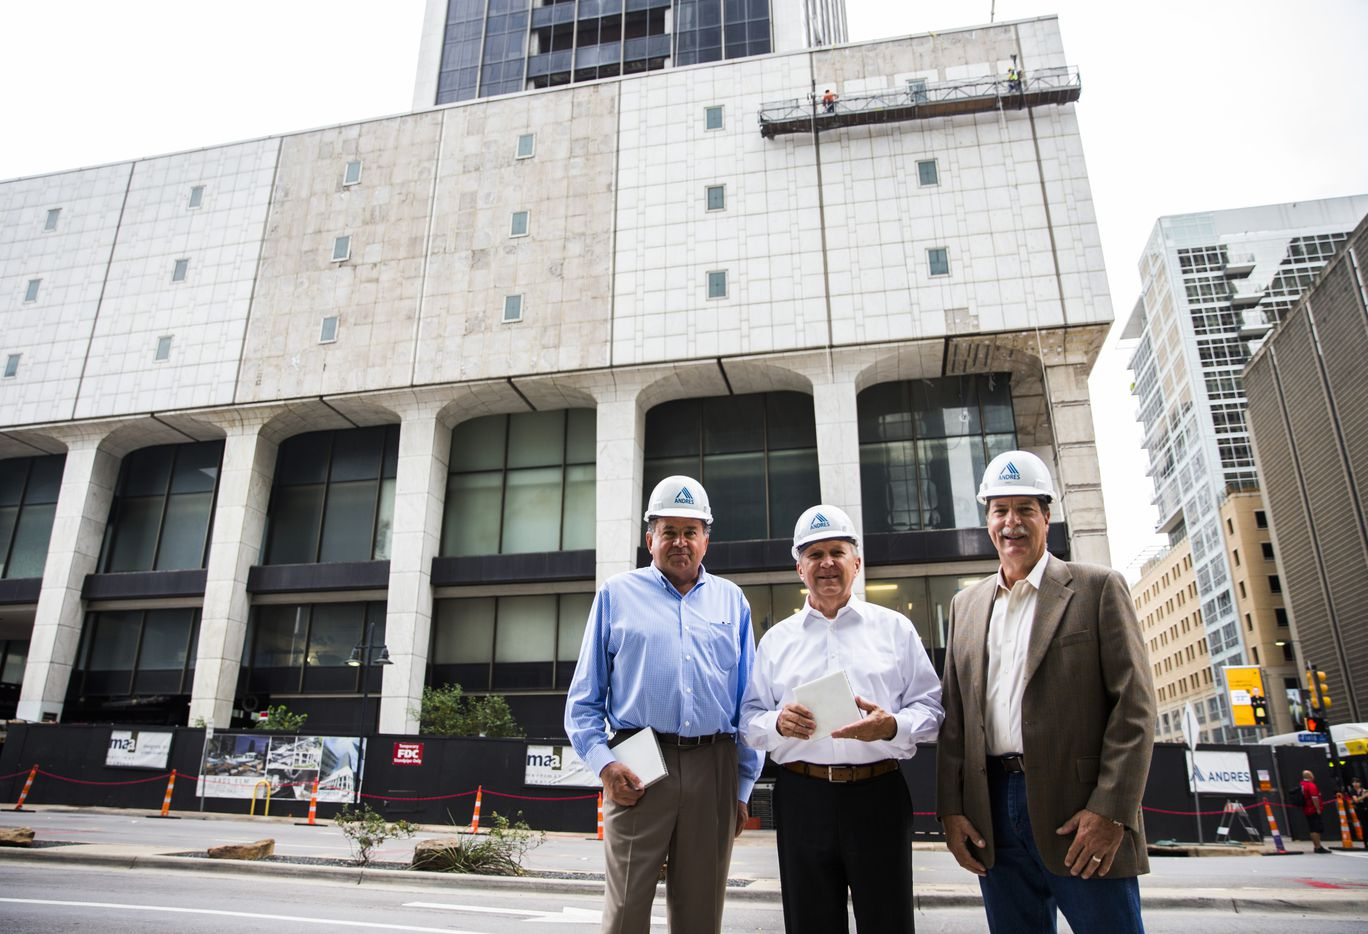 Daniel Slain of HyCOMB USA, left, Jerry Merriman, president of Merriman Anderson architects, and Steve McCoy, president of construction at Drever Capital Management at the redevelopment site of the former First National Bank tower in downtown Dallas.